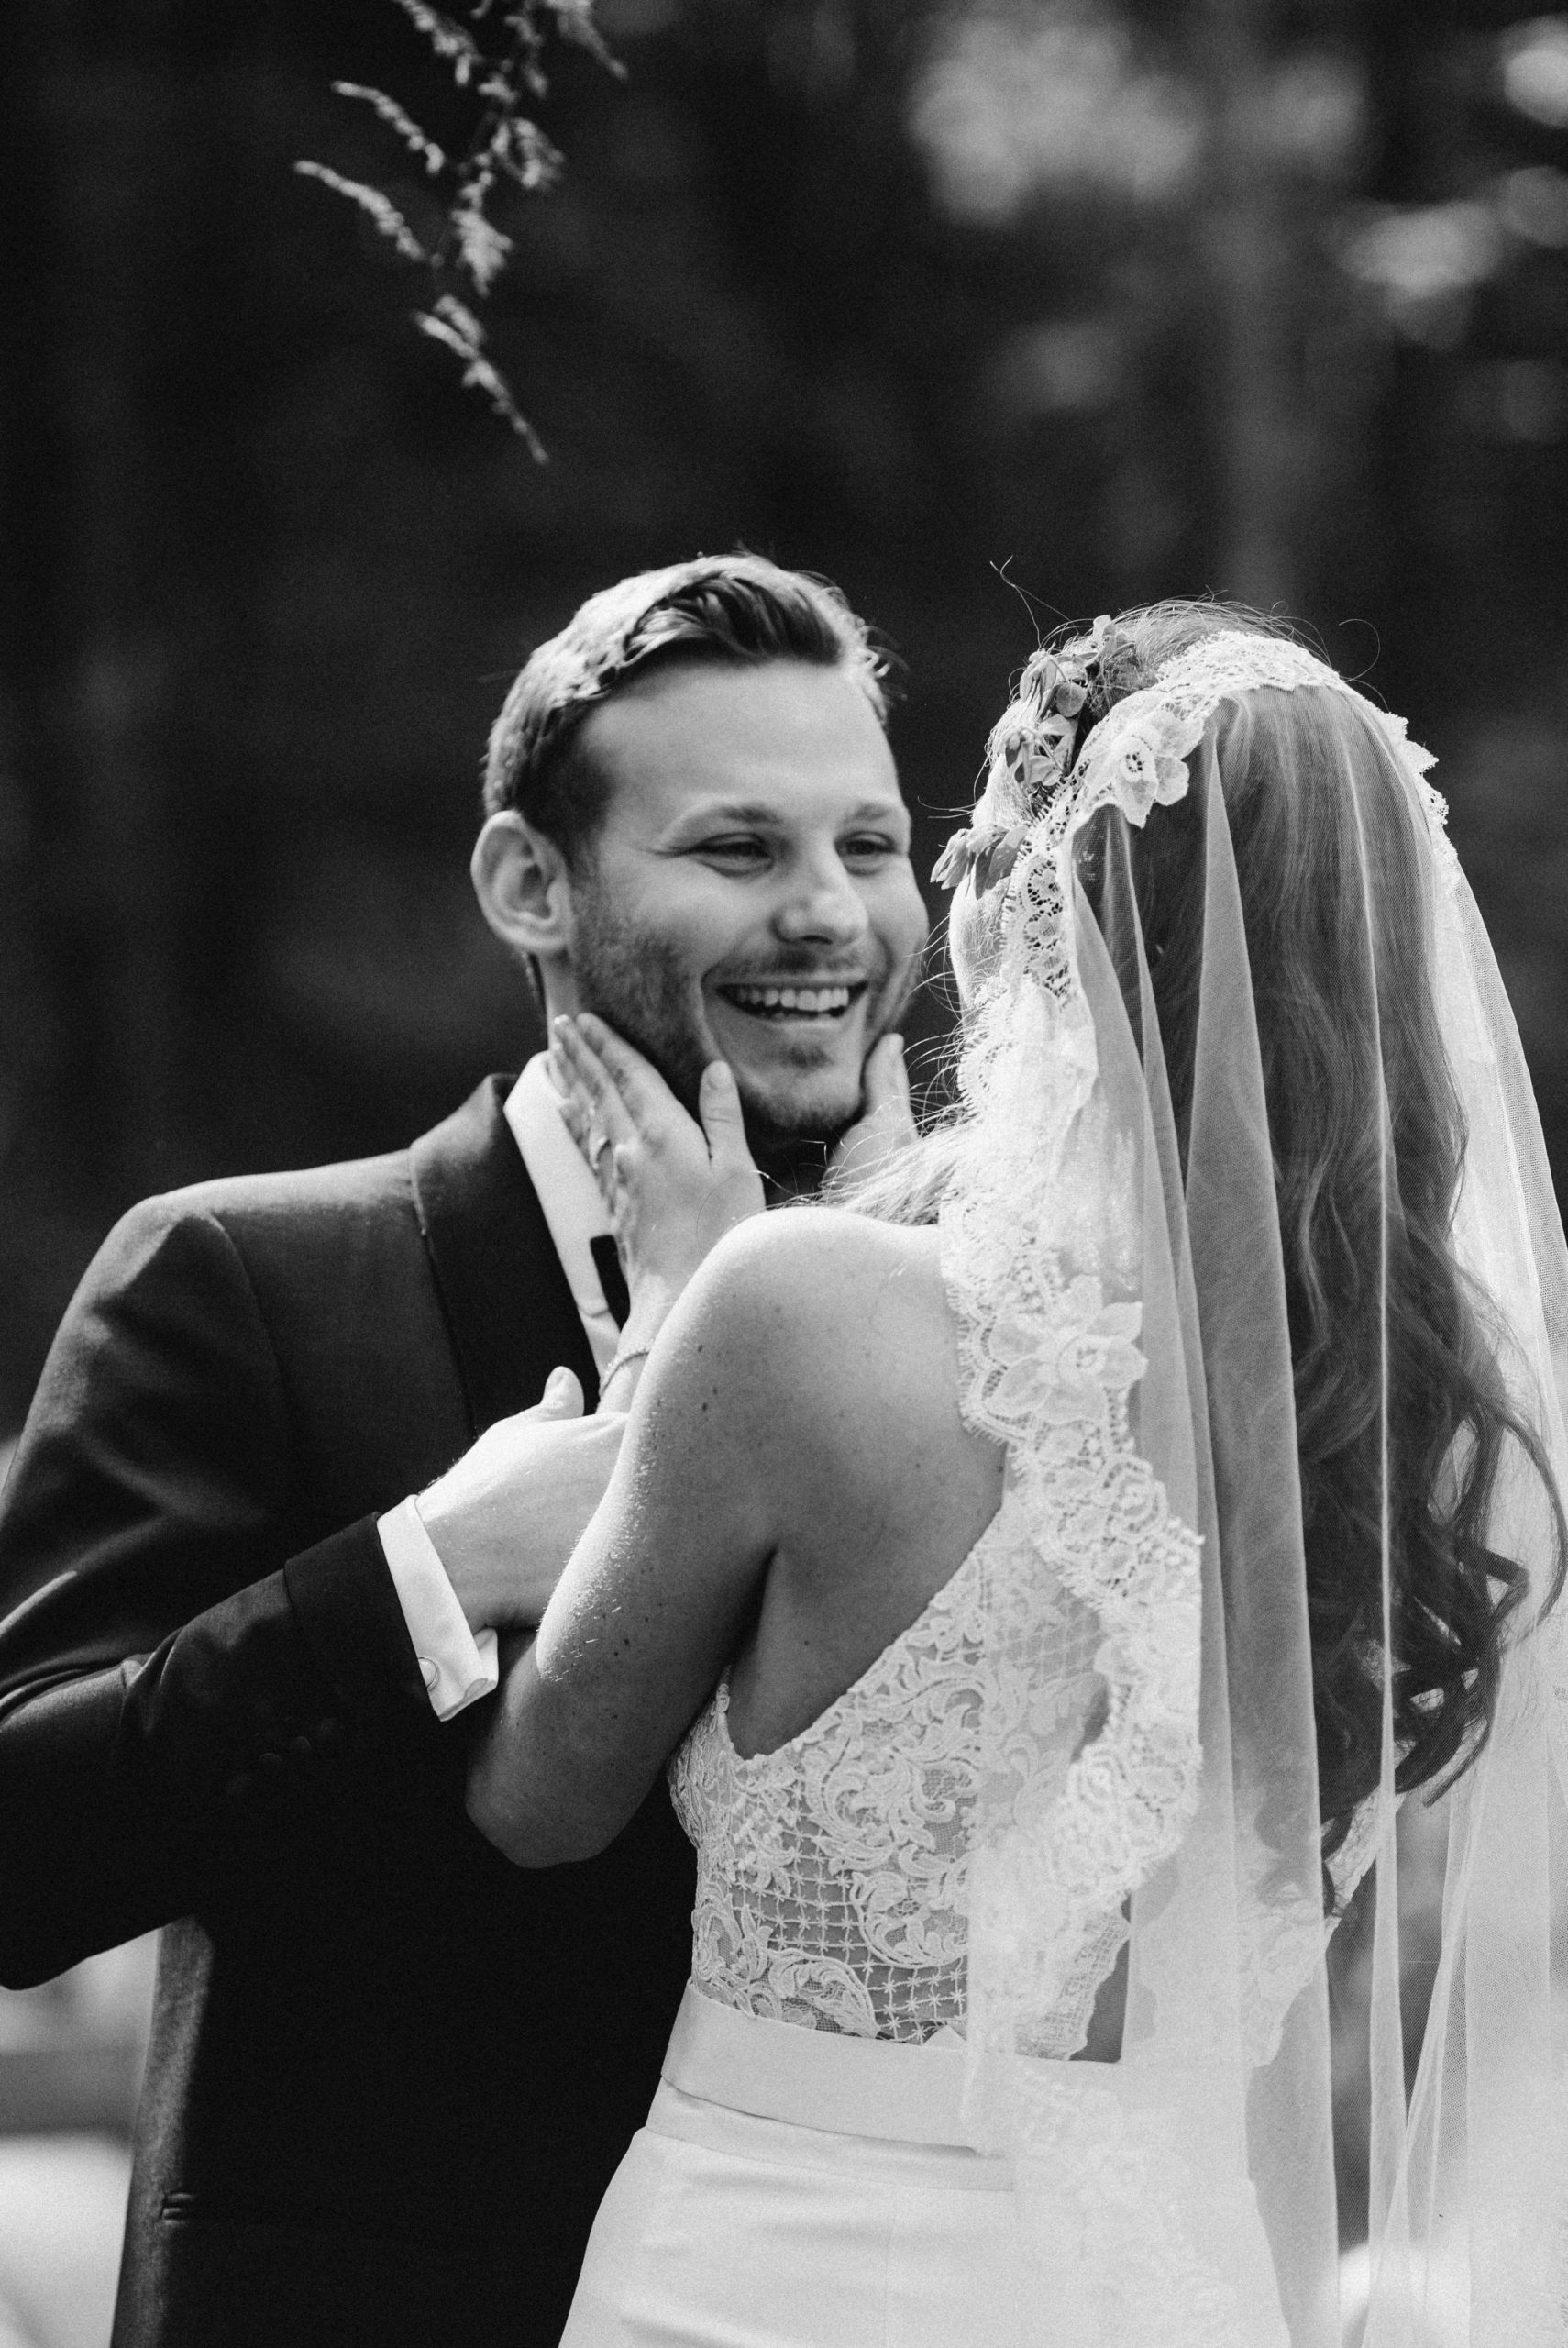 Groom smiling during wedding ceremony at the Pine Grove location at Roxbury Barn Estate in the Catskills New York